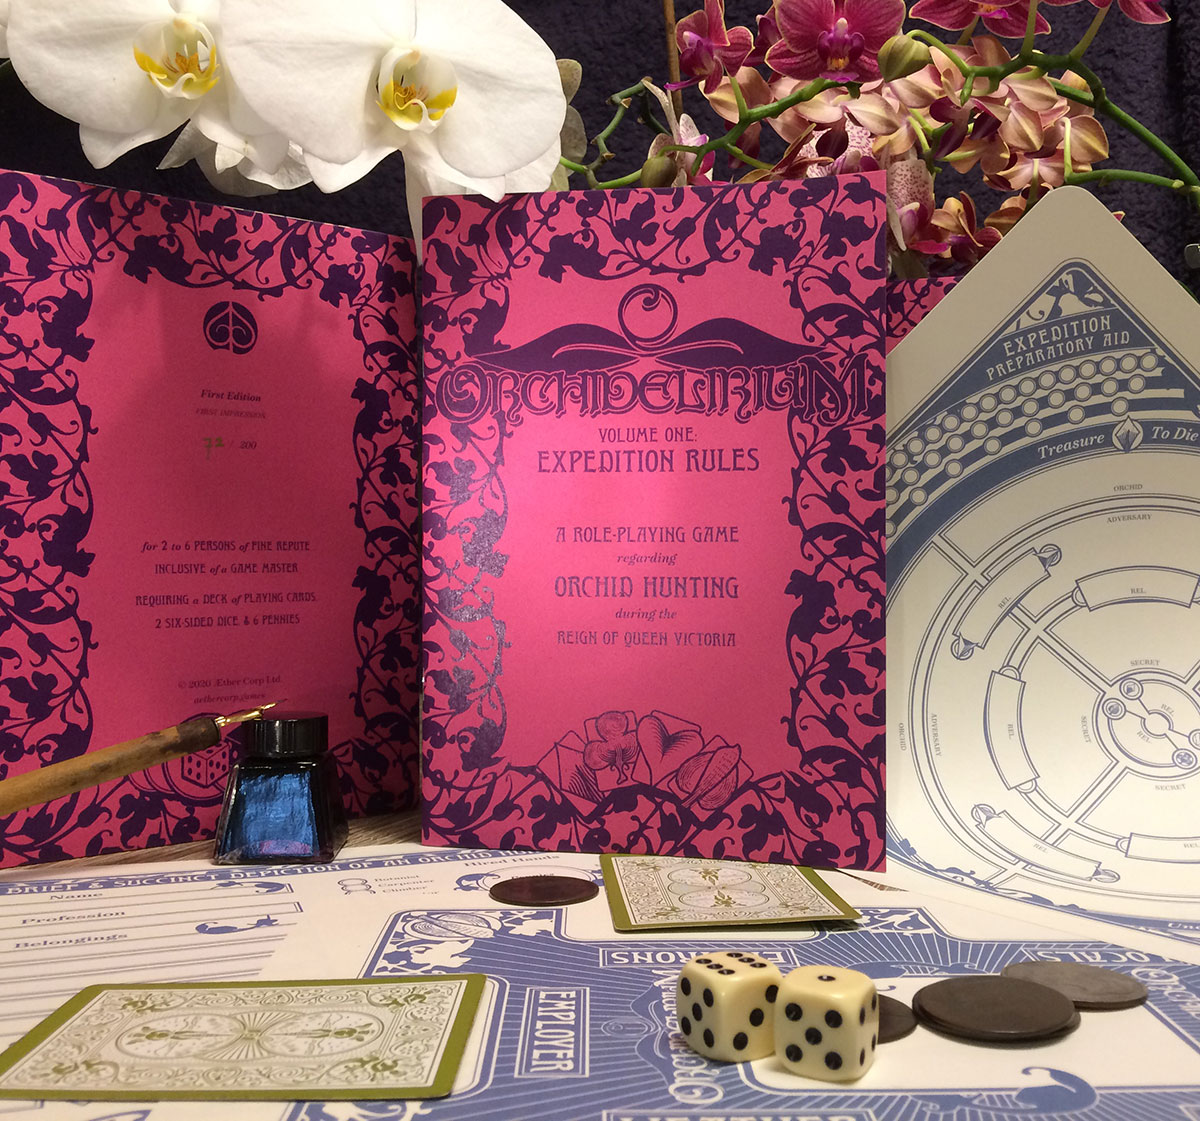 Photo of first edition zine with pink cover surrounded by orchids and print outs